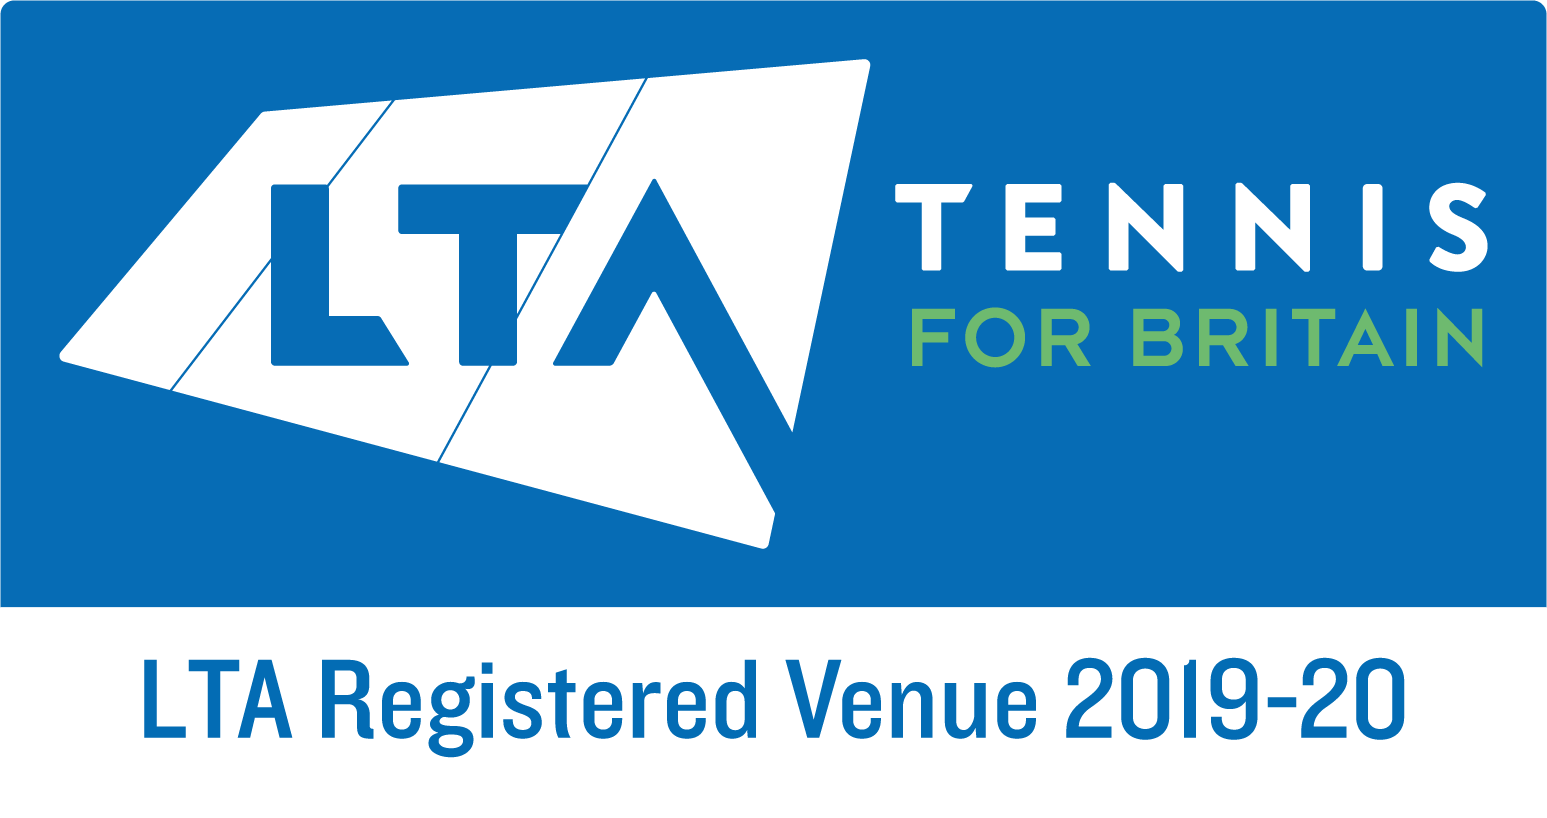 LTA Registration